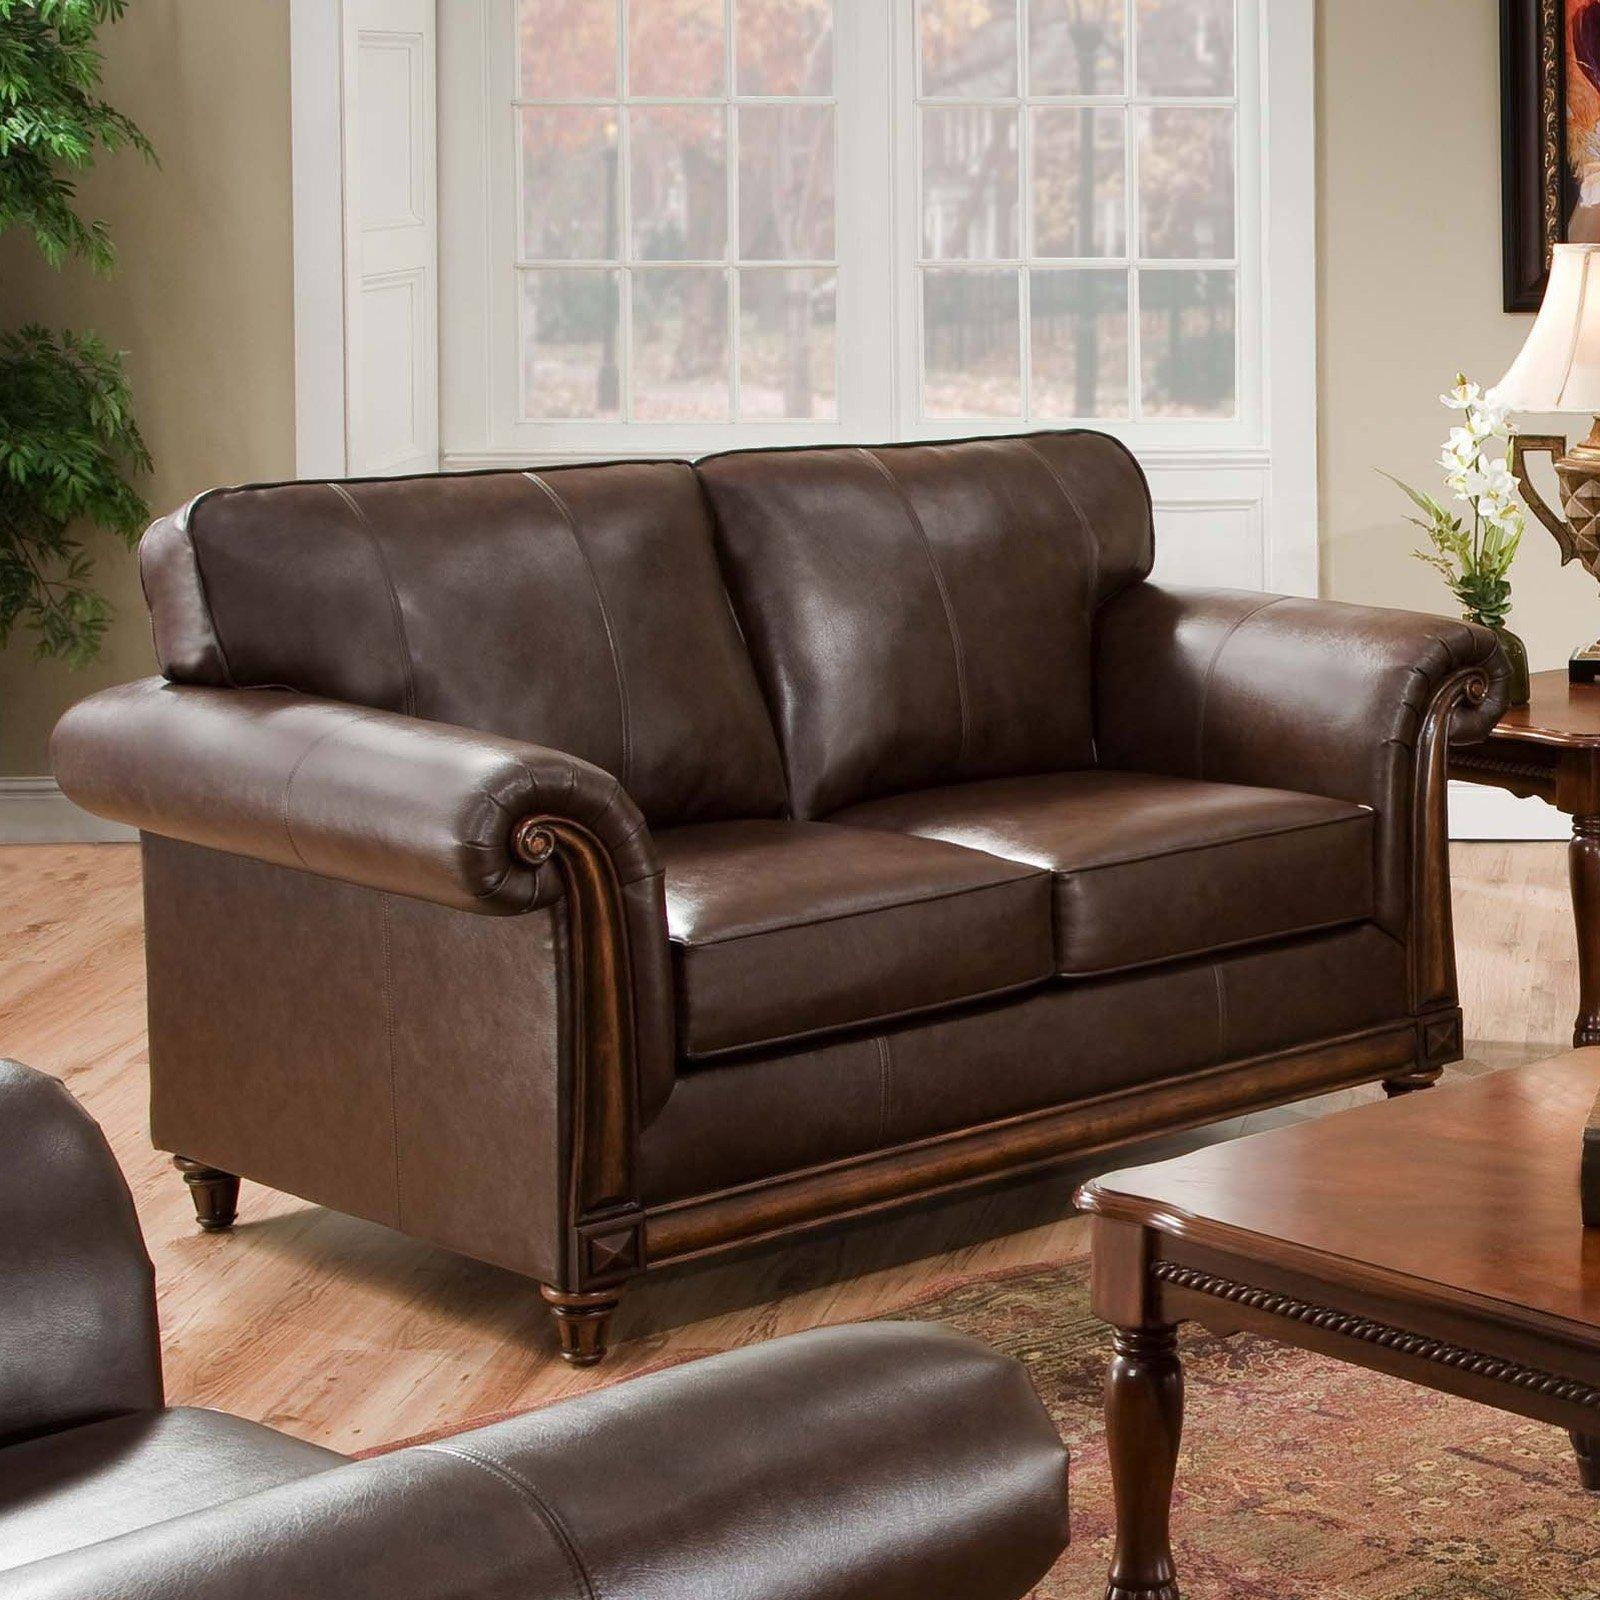 Simmons San Diego Coffee Leather Loveseat | Hayneedle Inside Simmons Leather Sofas And Loveseats (Image 9 of 20)